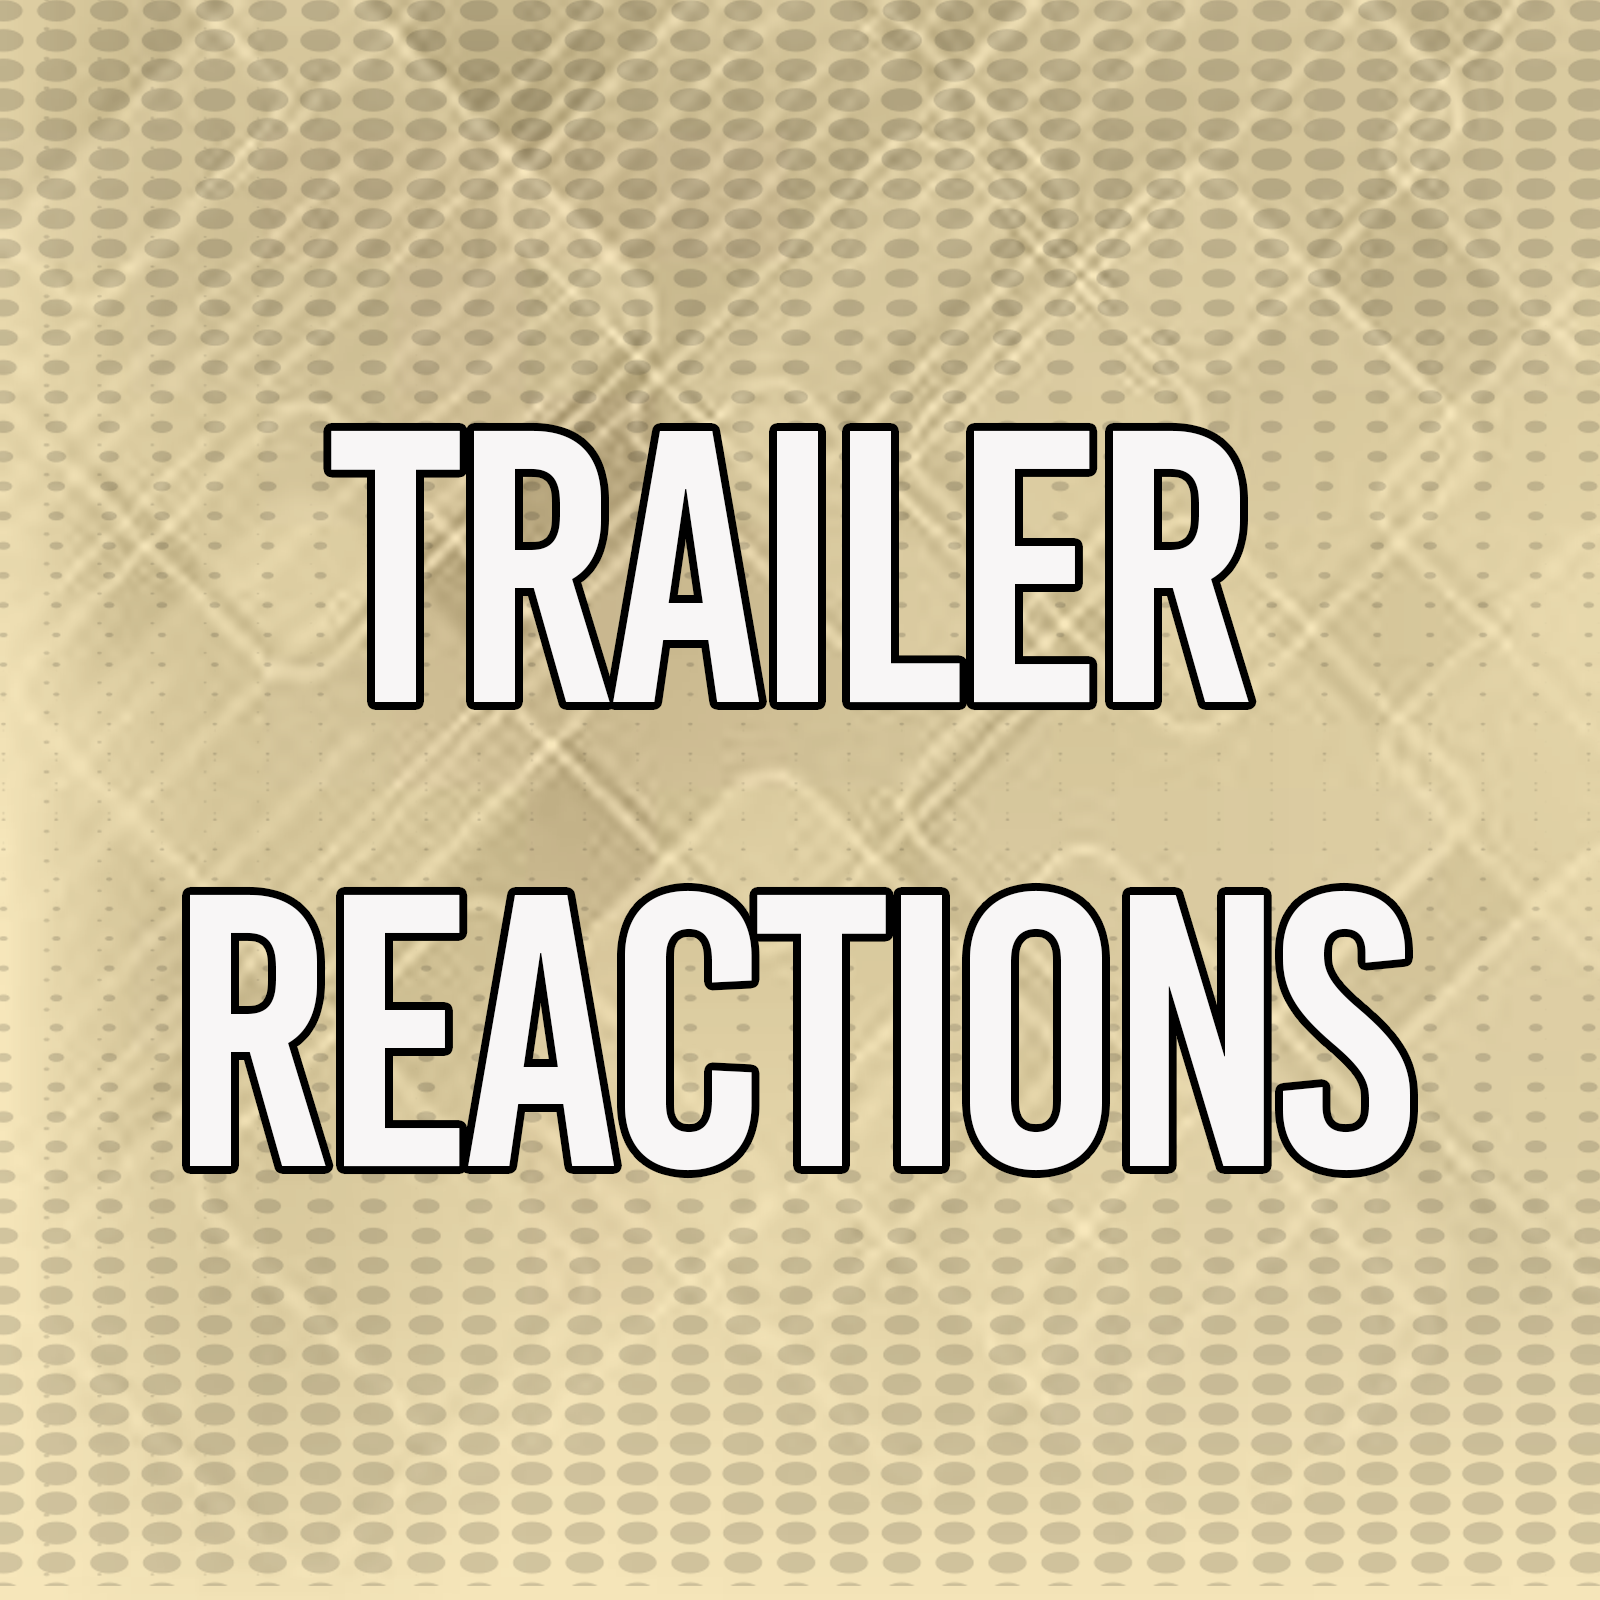 Trailer Reactions.png